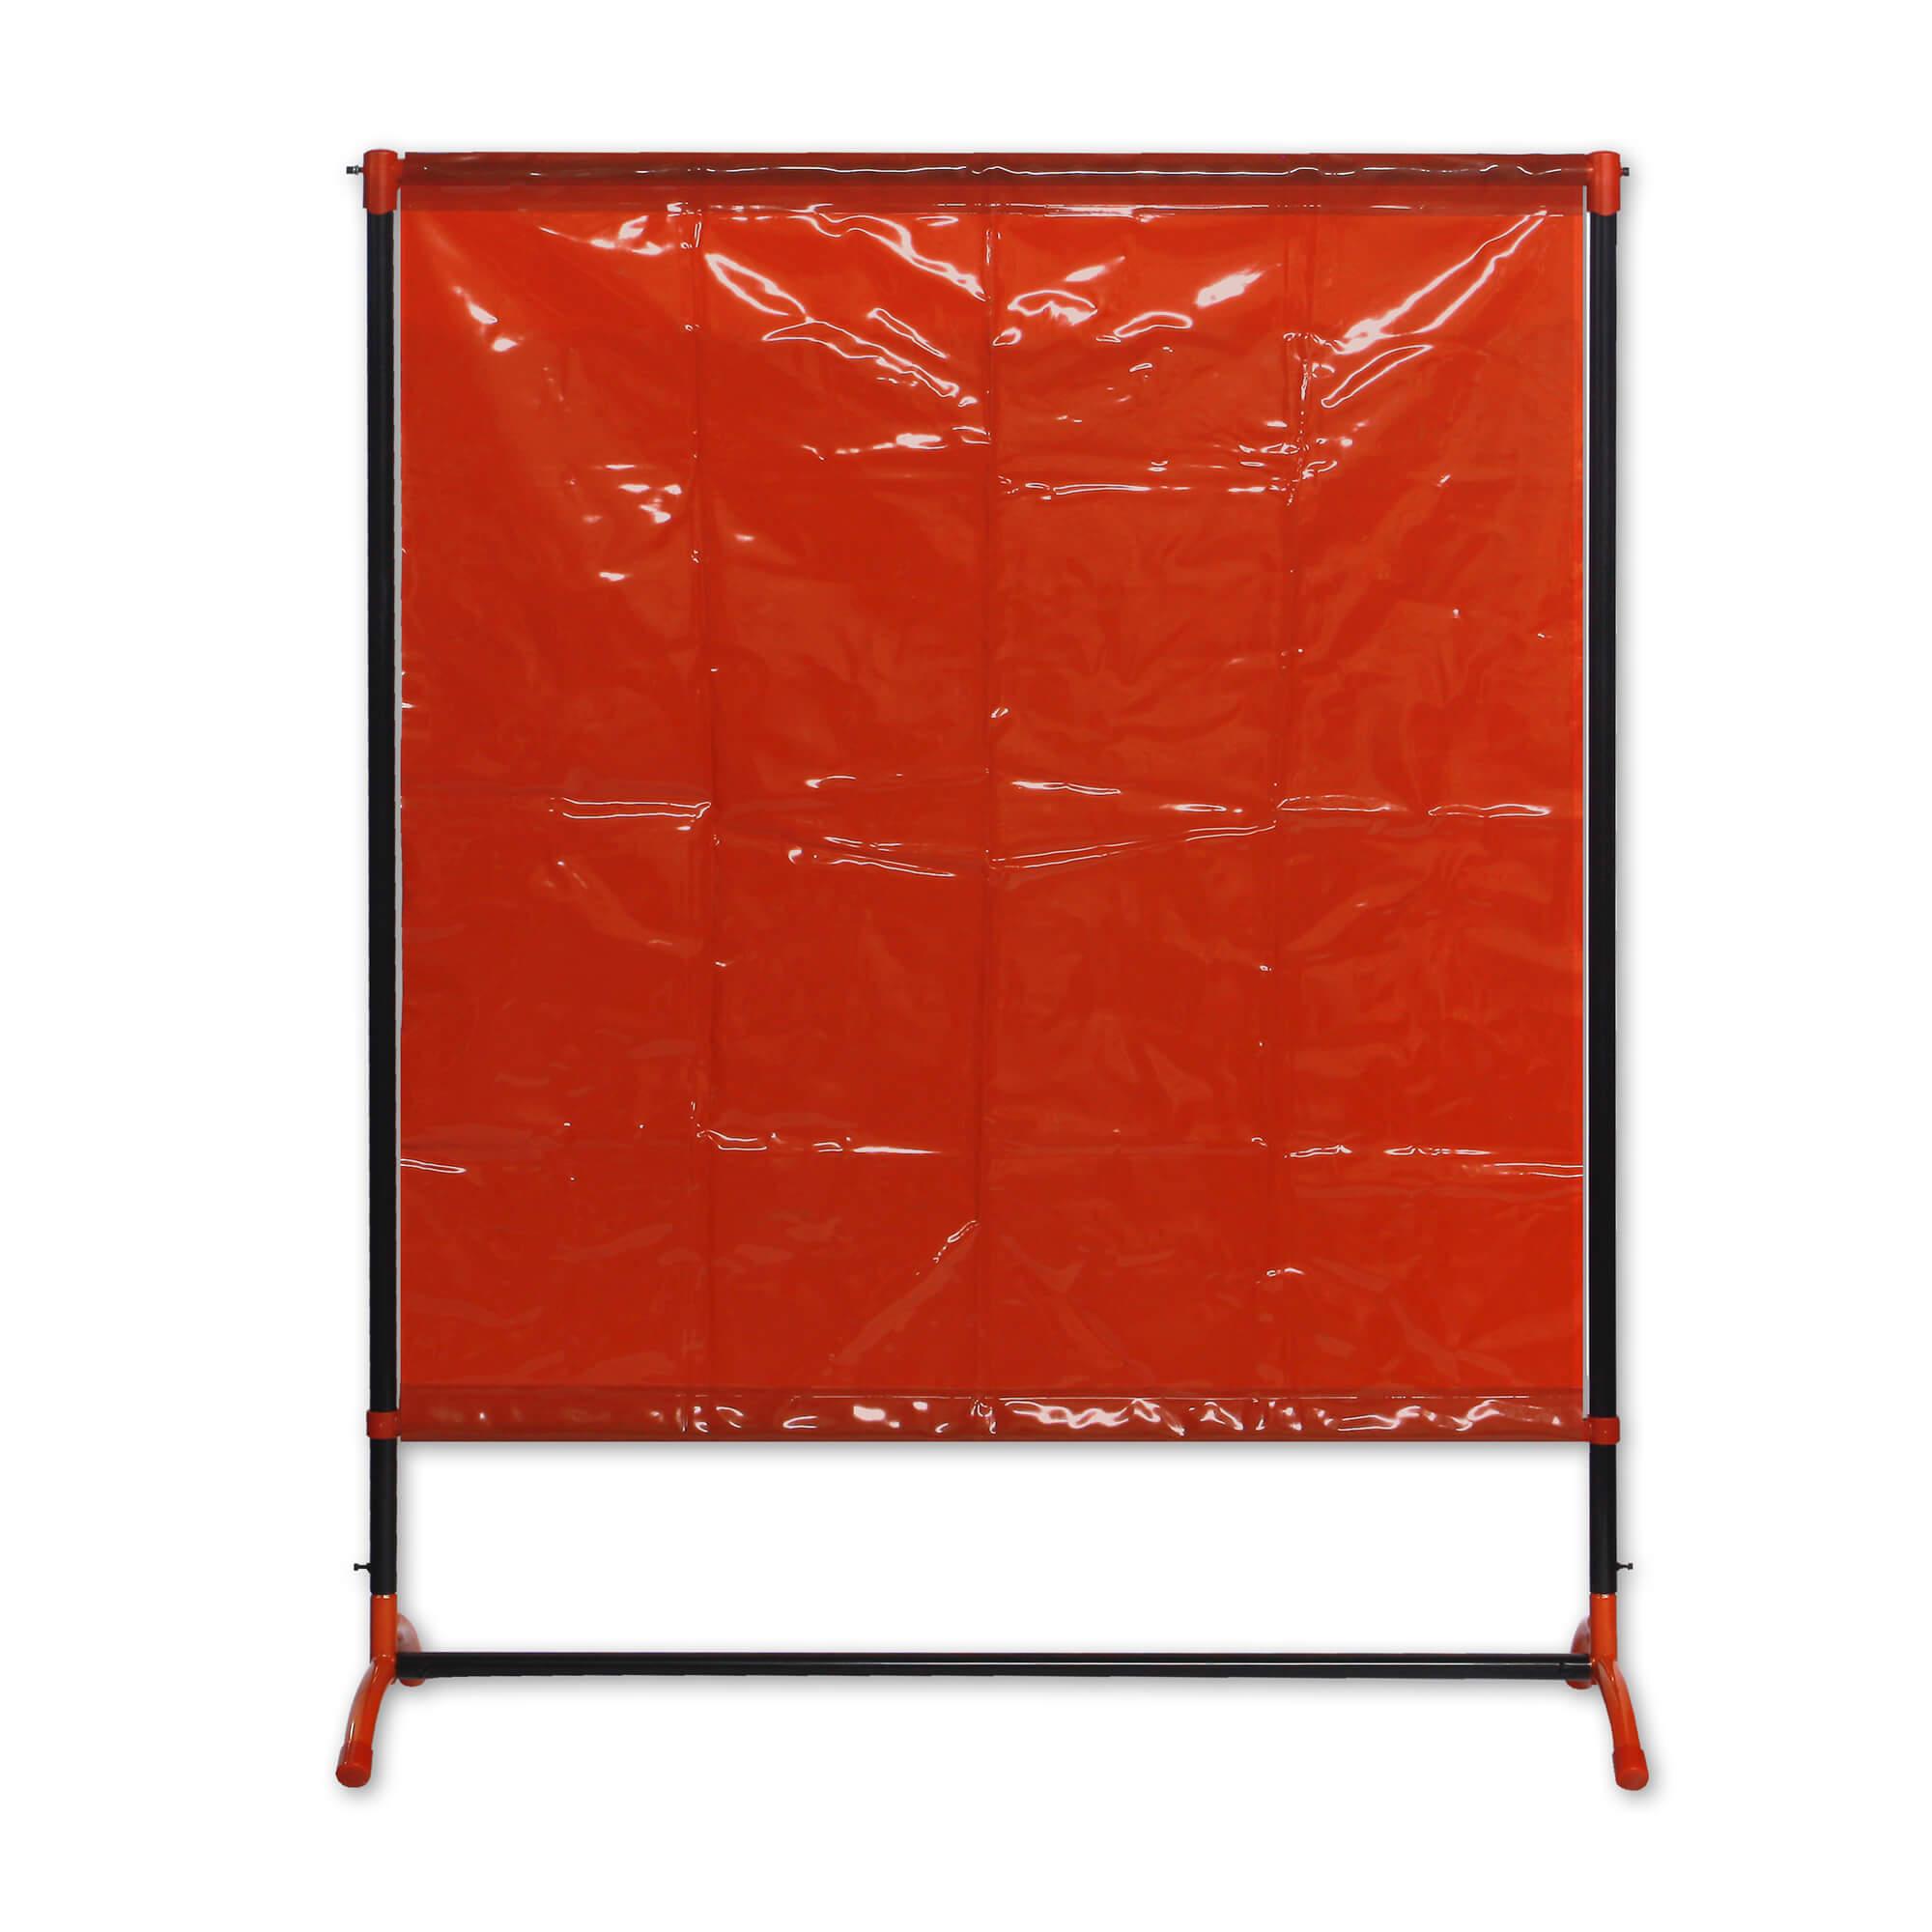 Welding grade PVC screens - ready made with frames